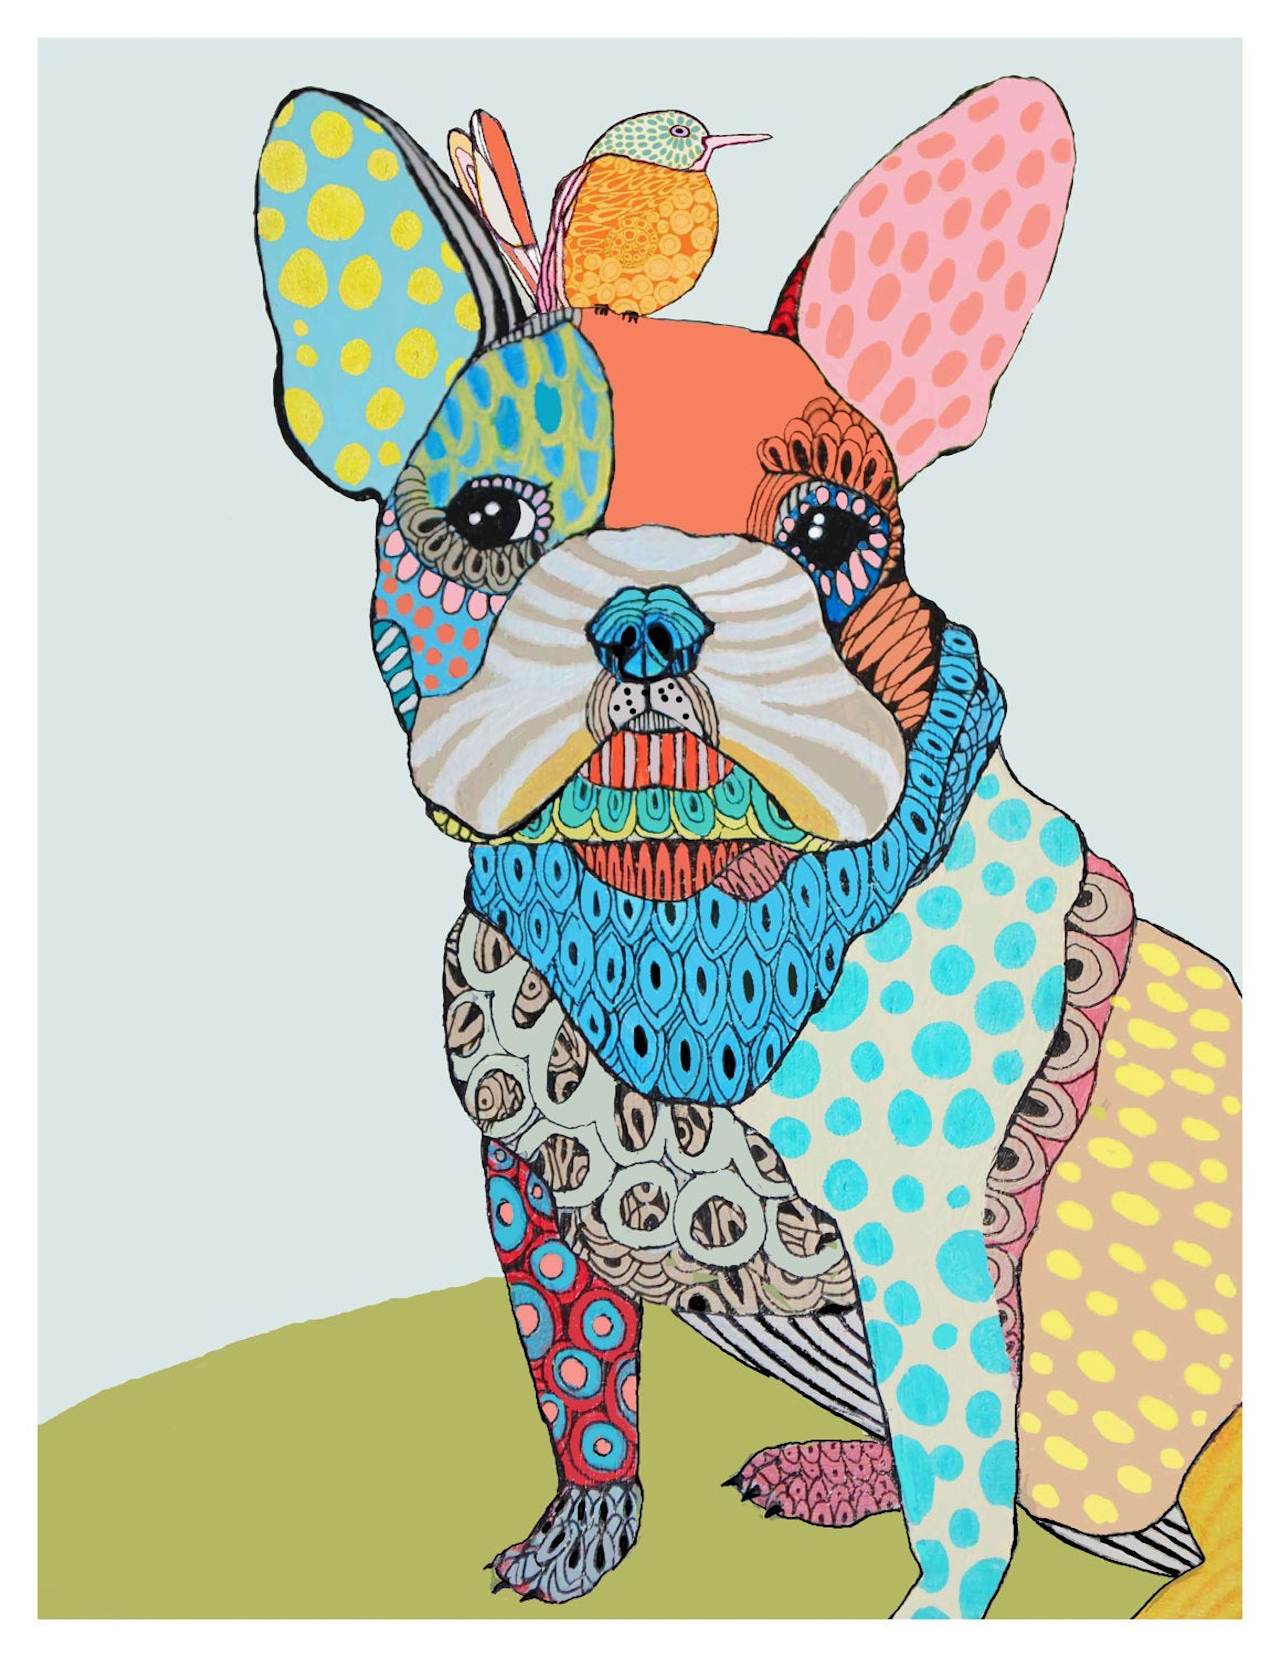 Whimsical Pet Portraits by Matea Sinkovec